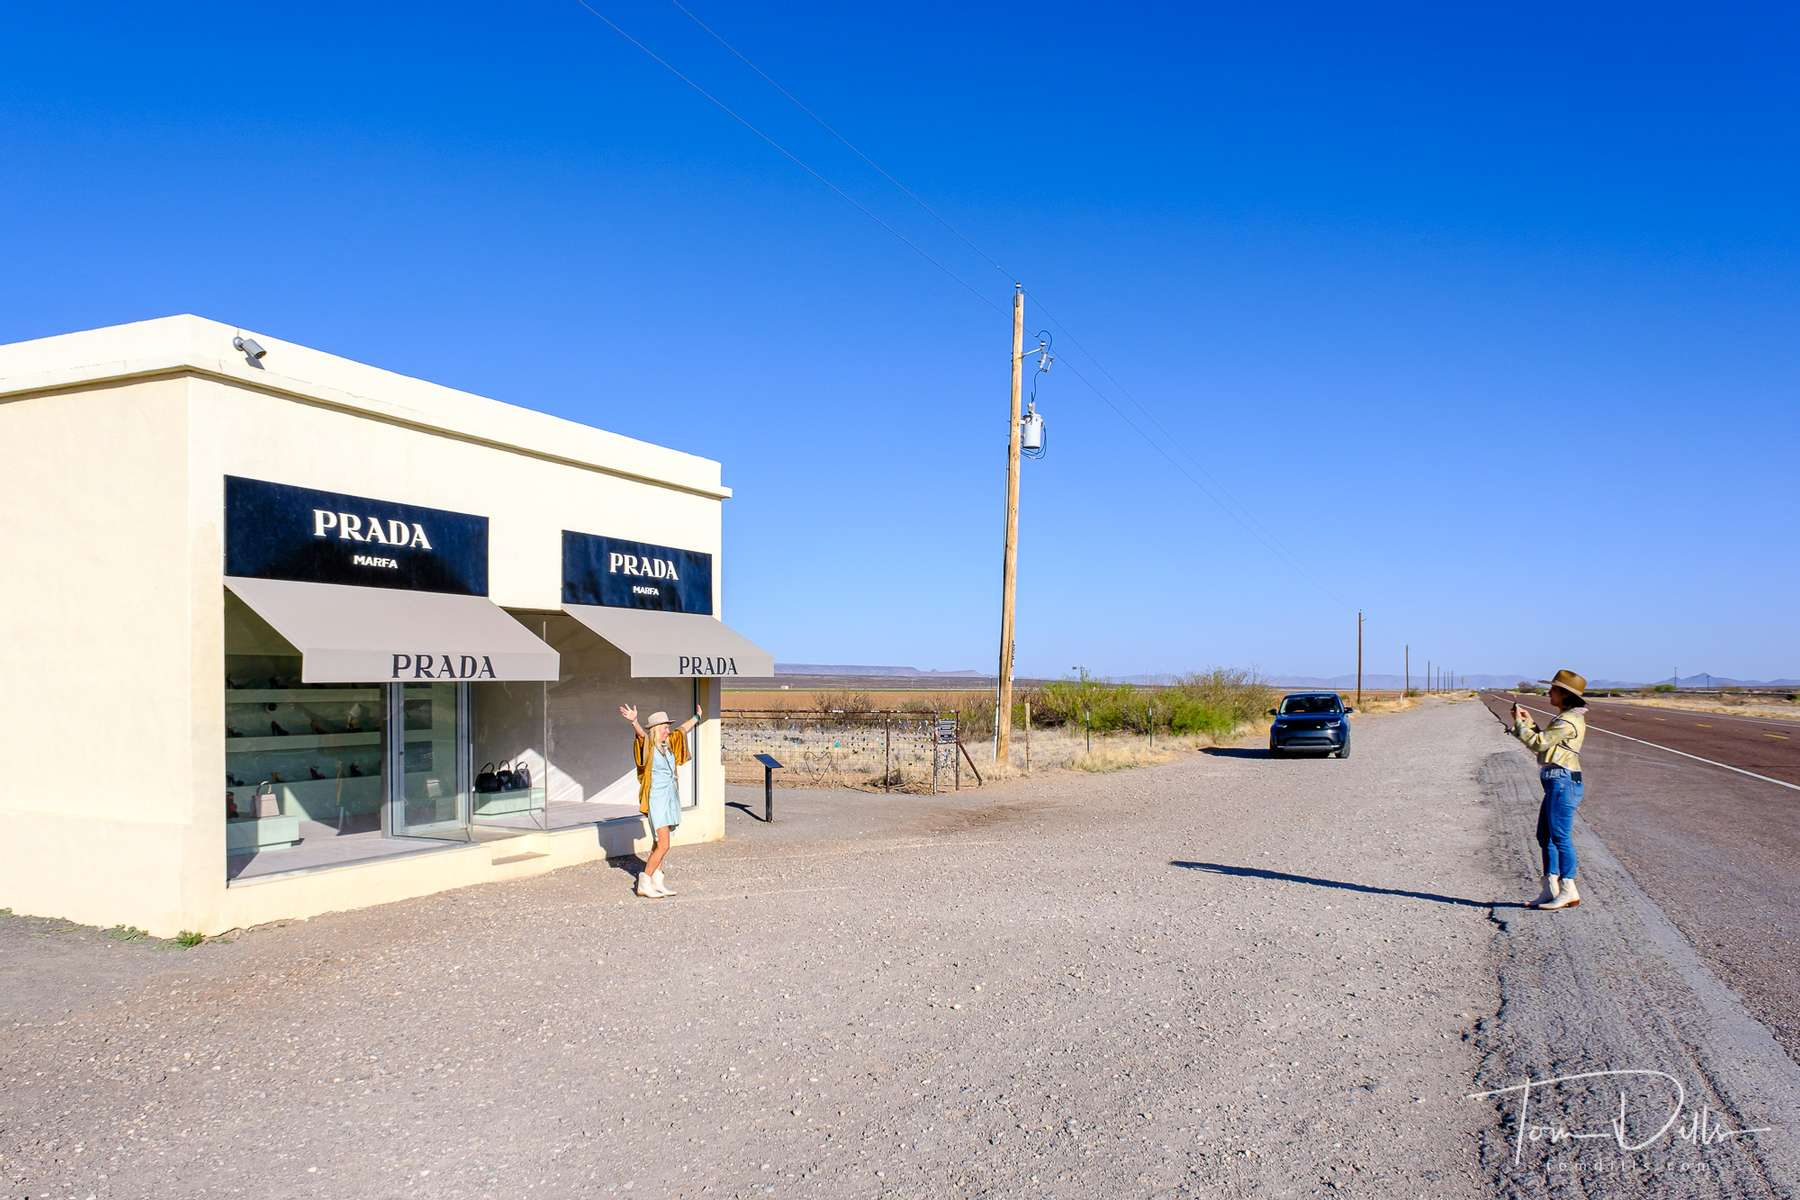 """Prada Marfa is a permanent sculptural art installation by artists Elmgreen and Dragset, located 1.4 miles northwest of Valentine, Texas, just off U.S. Highway 90, and about 26 miles northwest of the city of Marfa.  The installation, in the form of a freestanding building—specifically a Prada storefront—was inaugurated on October 1, 2005. The artists described the work as a {quote}pop architectural land art project."""""""